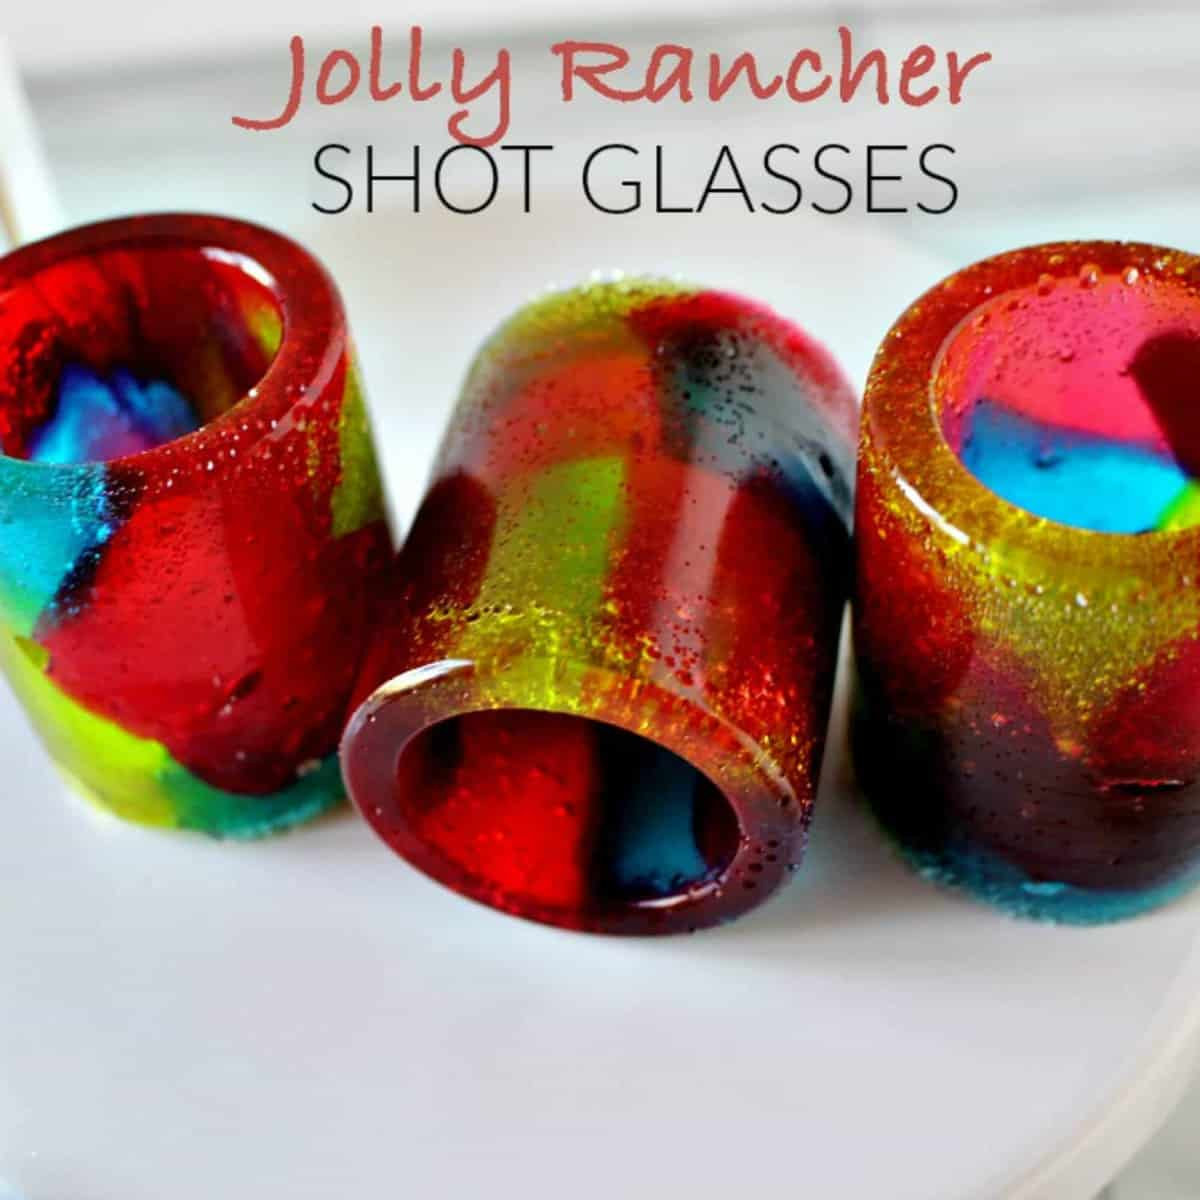 Edible Shot Glass Desserts